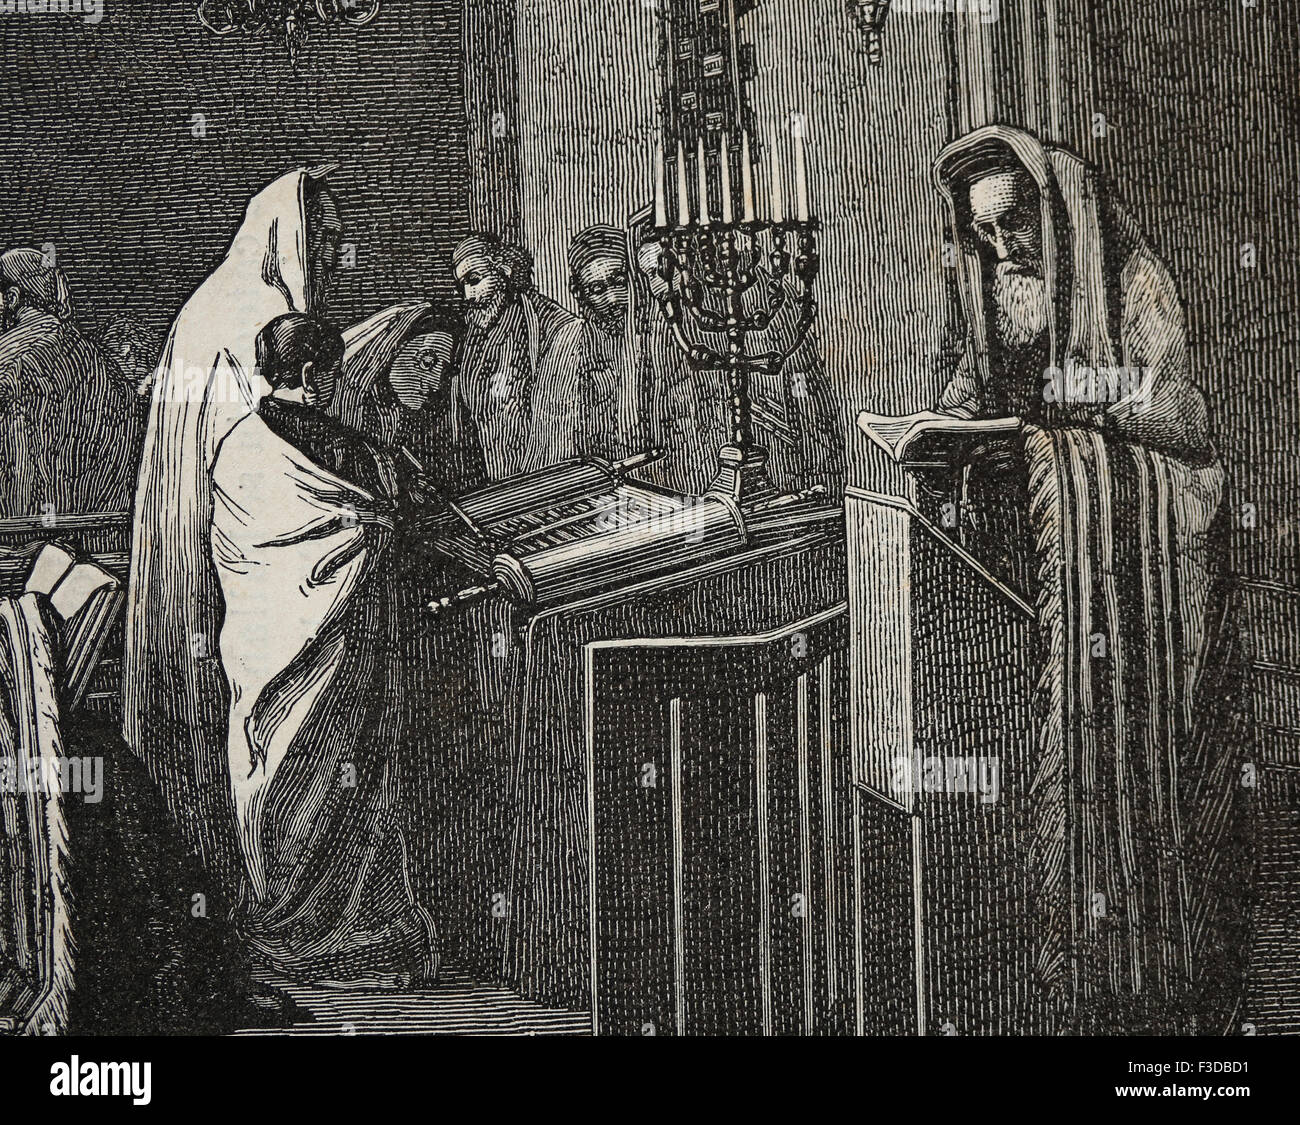 Religion. Judaism. Rabbi is reading in Torah at Synagogue. Engraving by Froment, published on La Ilustracion, 1870, - Stock Image